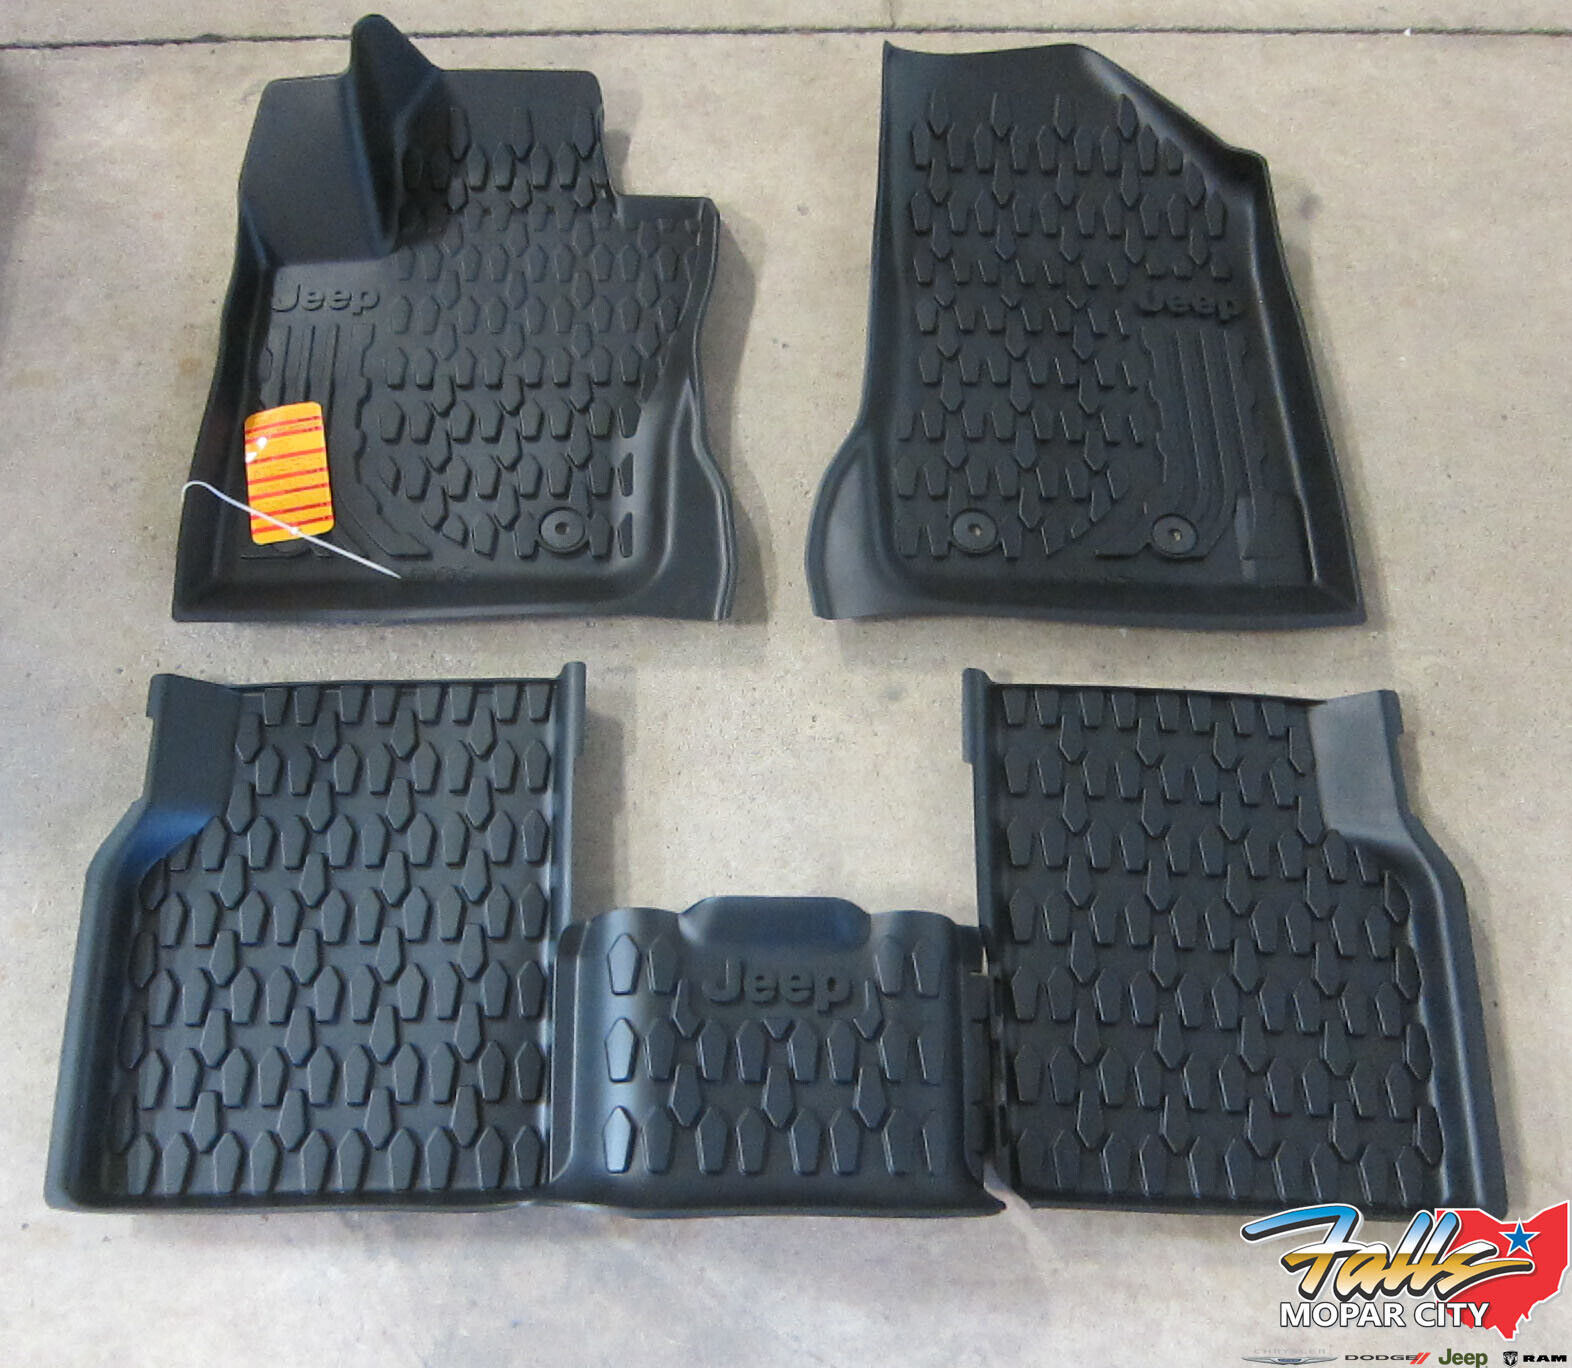 2018 Jeep Compass Black with Red Edging Driver Passenger /& Rear Floor GGBAILEY D60188-S1A-BLK/_BR Custom Fit Car Mats for 2017